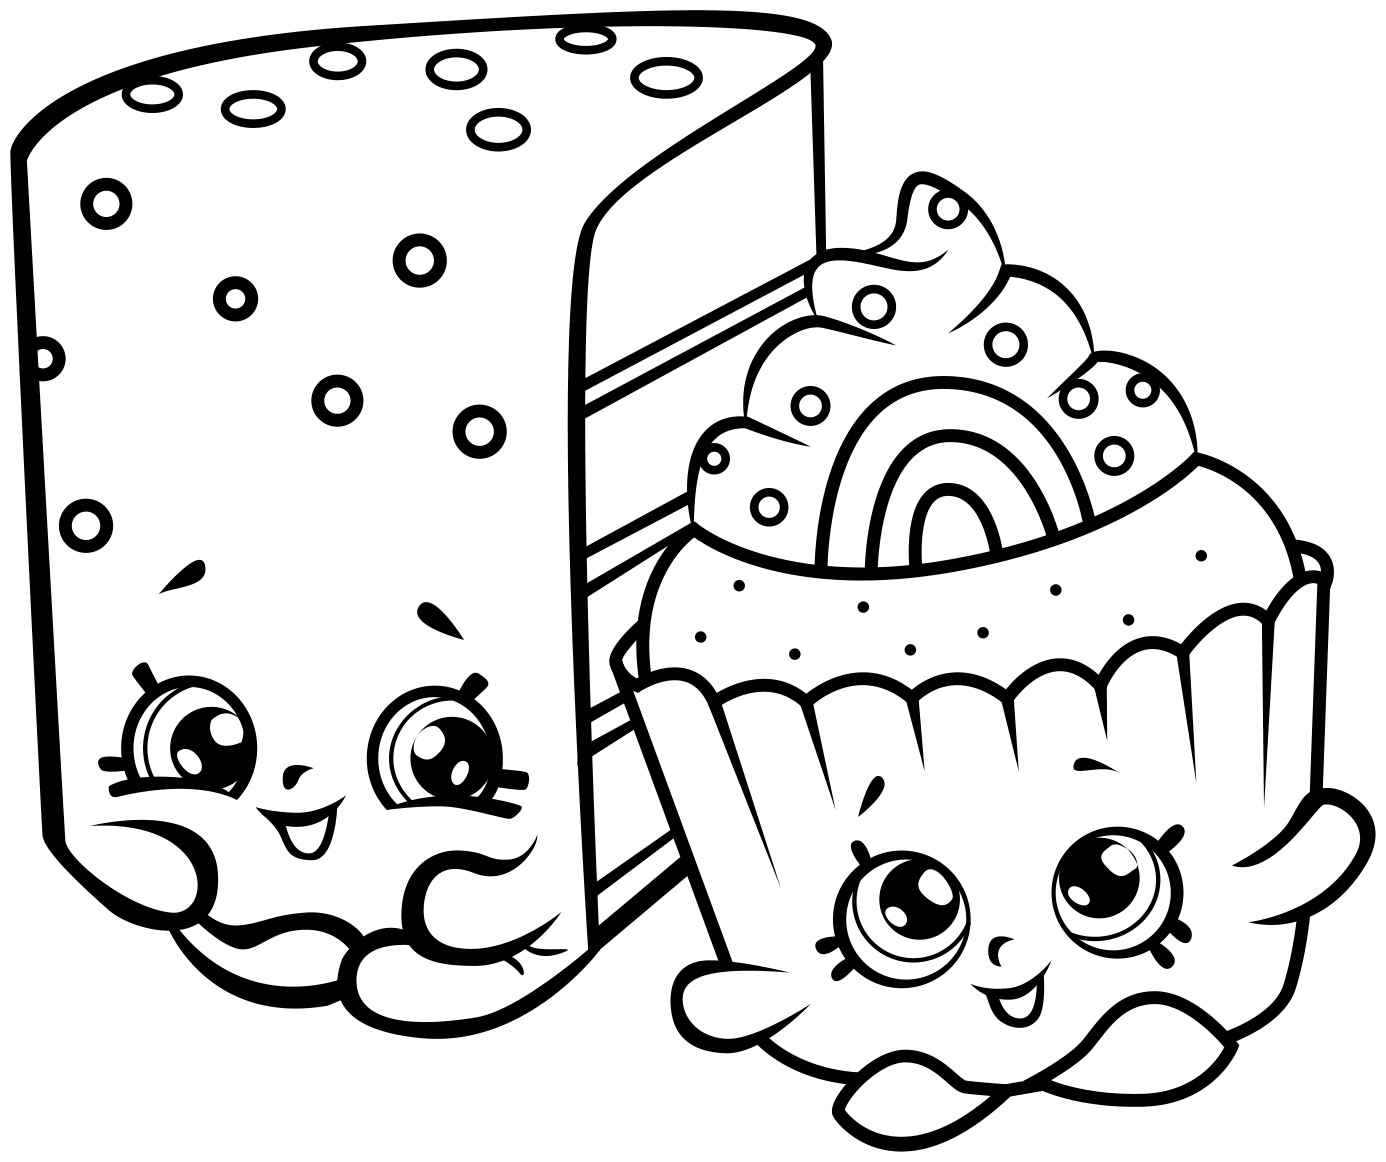 Printable Coloring Pages for Shopkins Free Shopkins Coloring Pages Collection Of Free Shopkins Printables Coloring Pages Download 4 Shopkins Printable